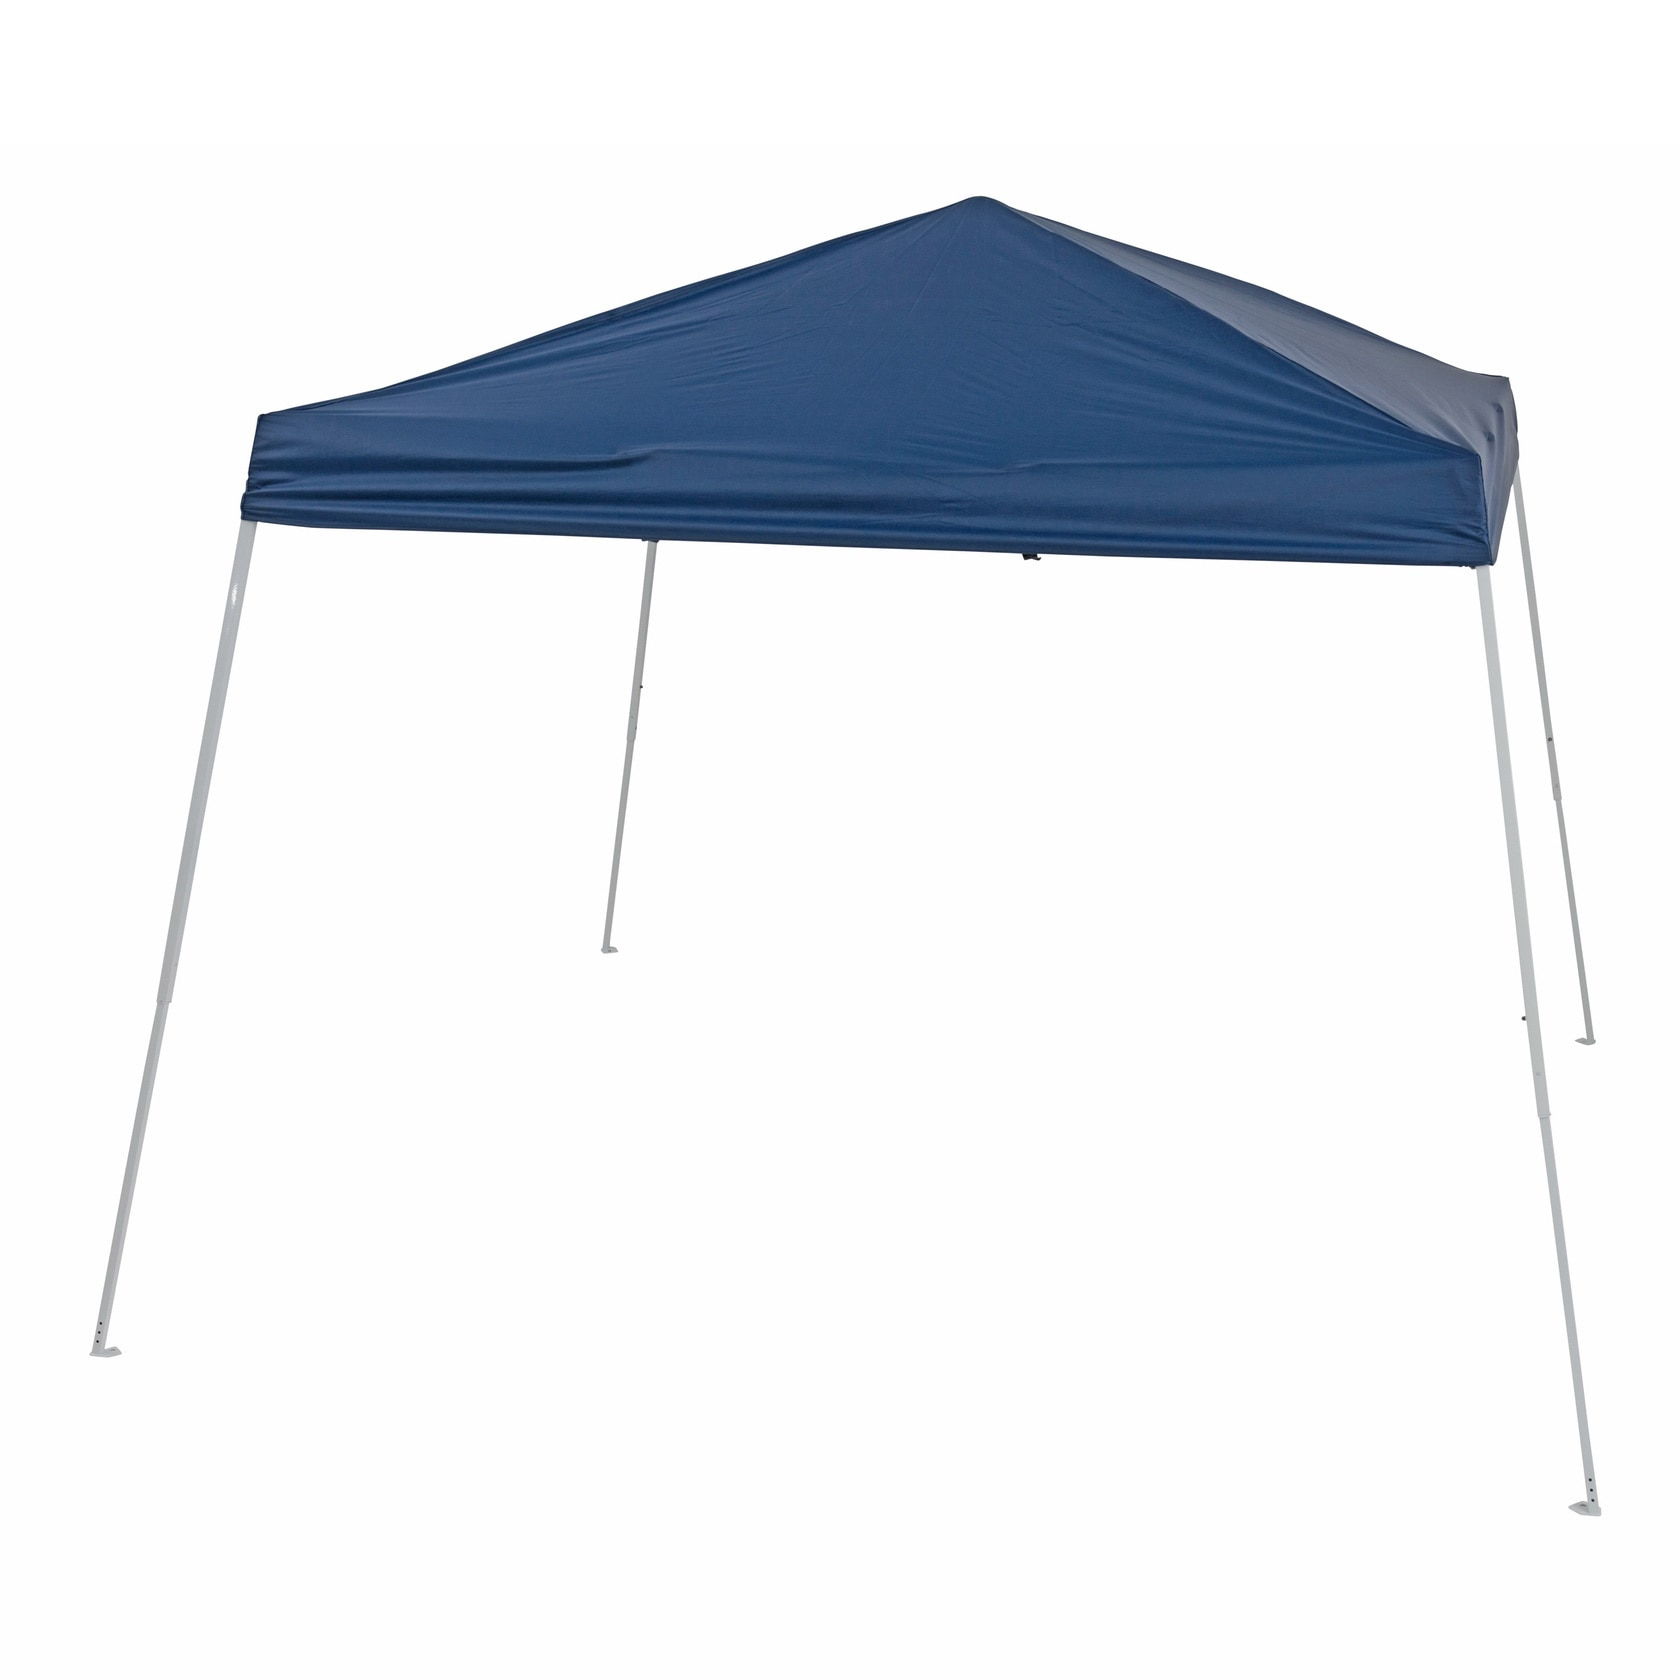 TrueShade Plus Canopy Shade Blue or Beige 8' x 8' Instant...